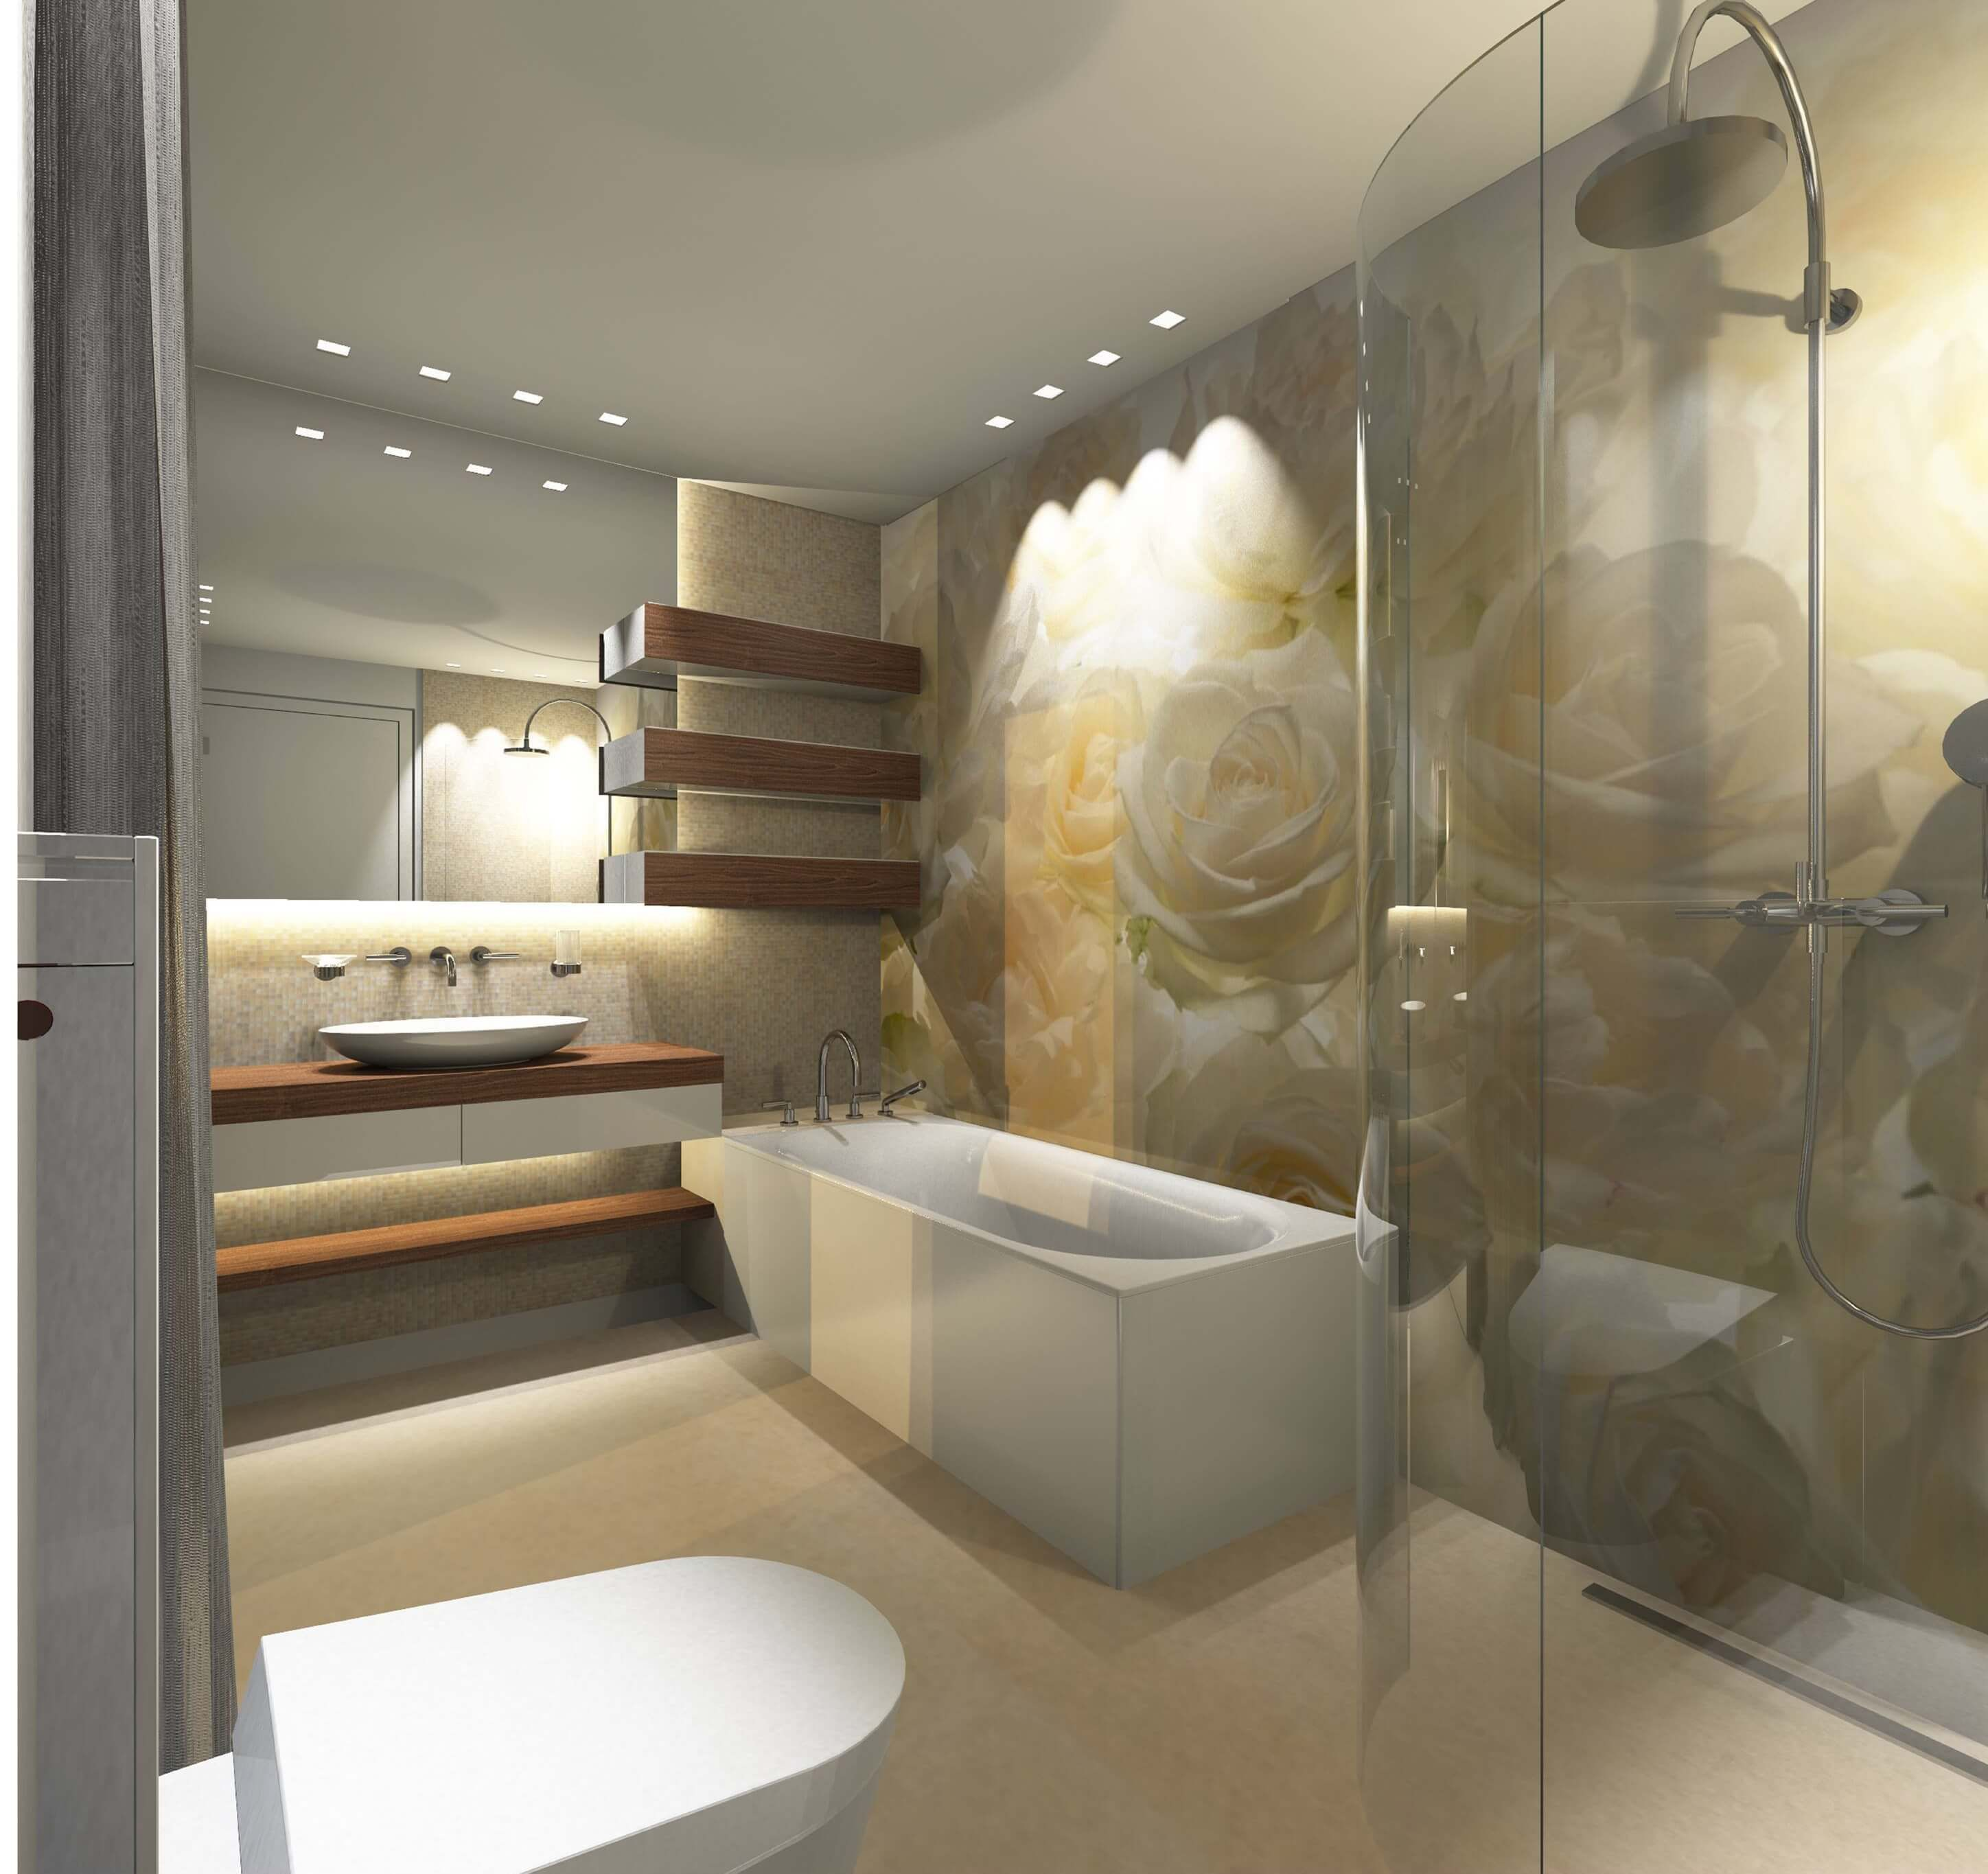 Badezimmer 10 Qm Ideen Des Images In 2020 Bathroom Renovation Cost Small Bathroom Interior Small Bathroom